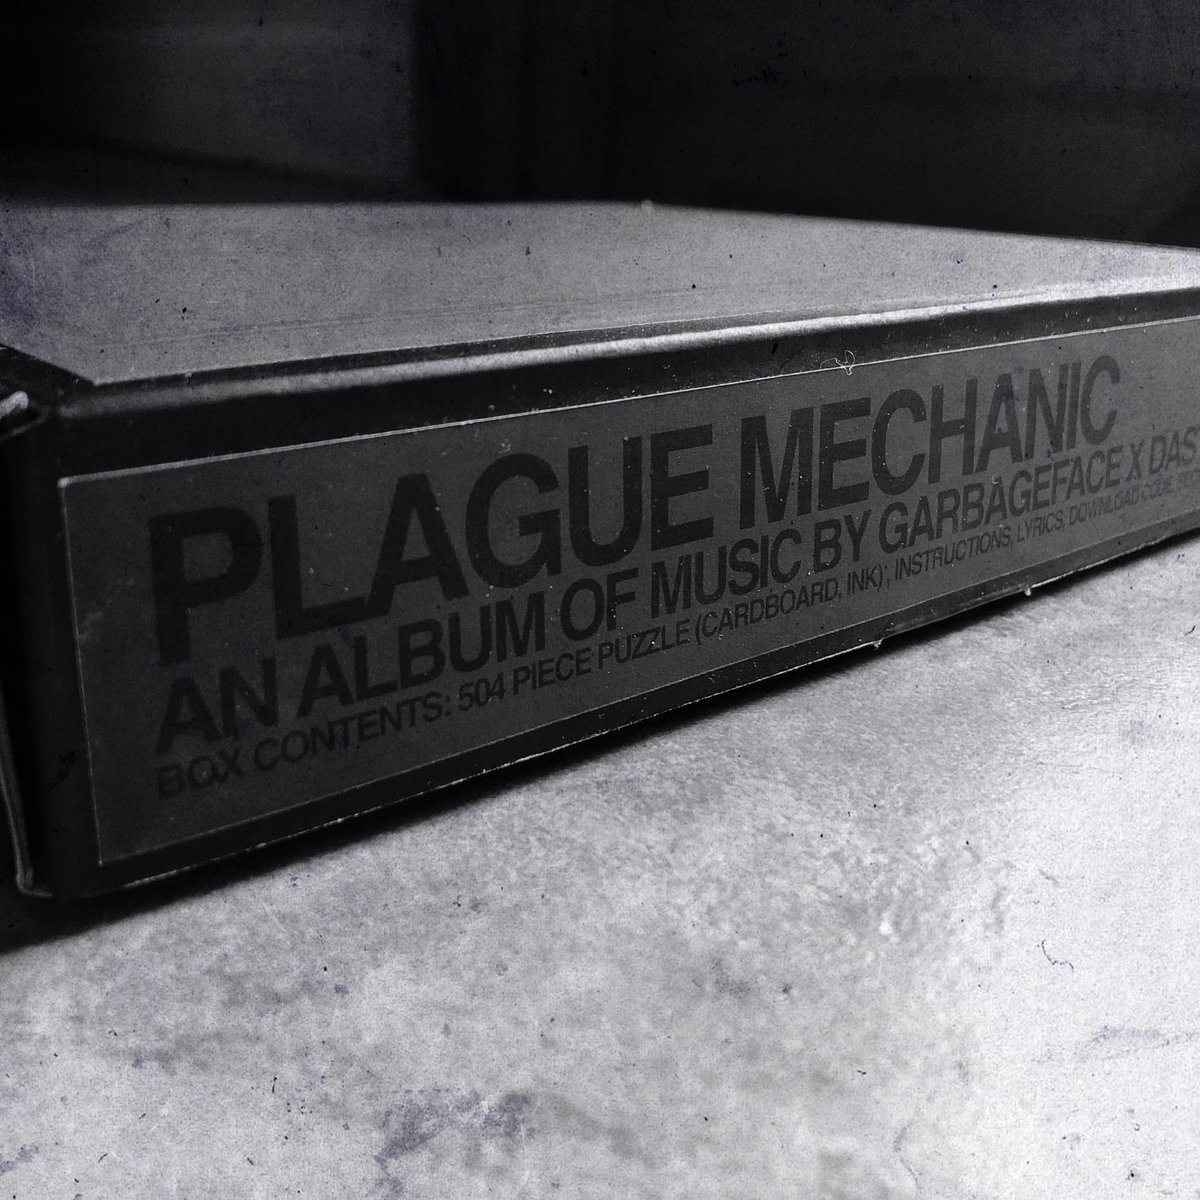 Plague Mechanic Puzzle + Download Code or CD | garbageface